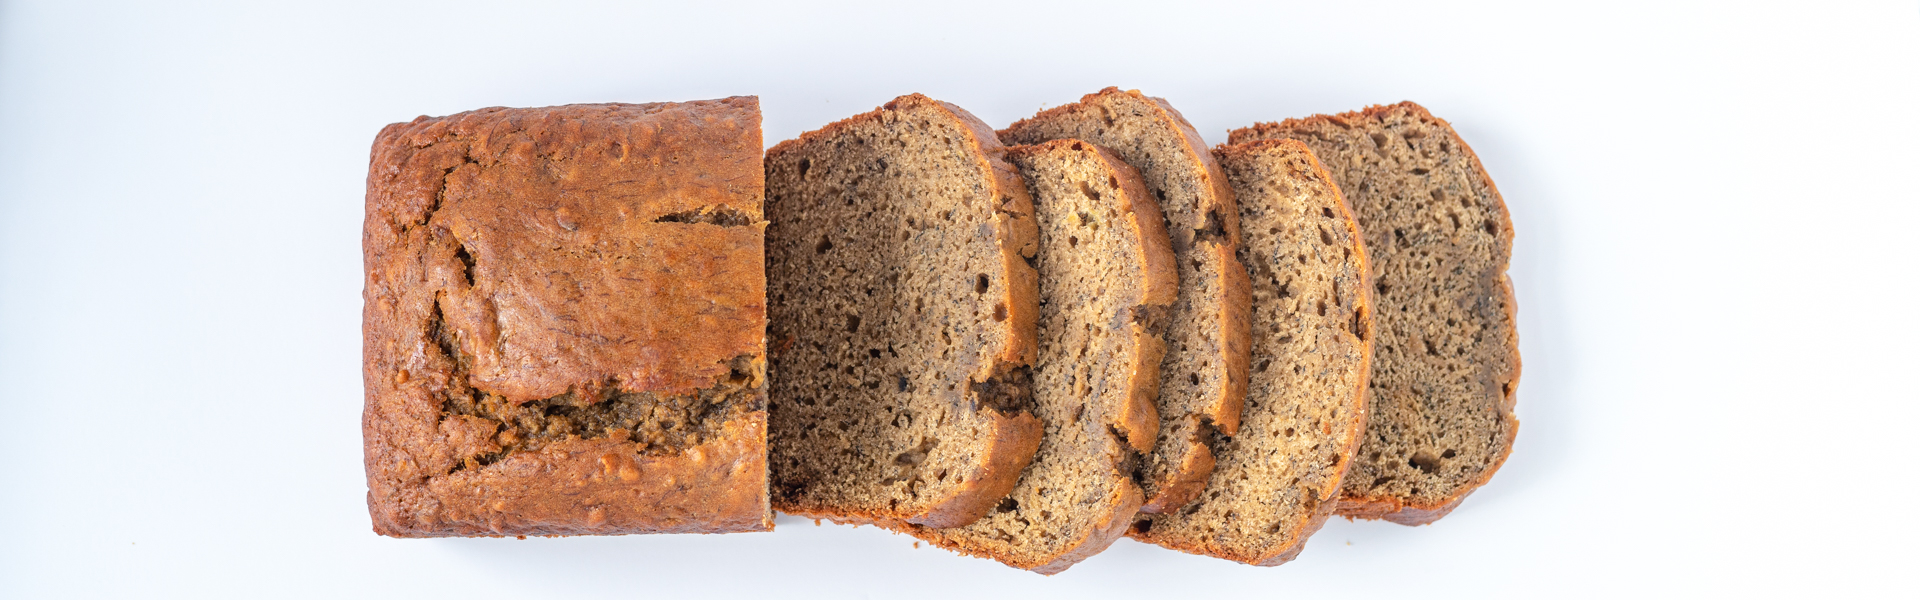 <p>Adding a small quantity (2%) of Prune Juice Concentrate to banana bread intensifies the banana flavor and deepens the caramelization. This also makes it possible to reduce the fat by half without losing the bread's signature richness.</p>